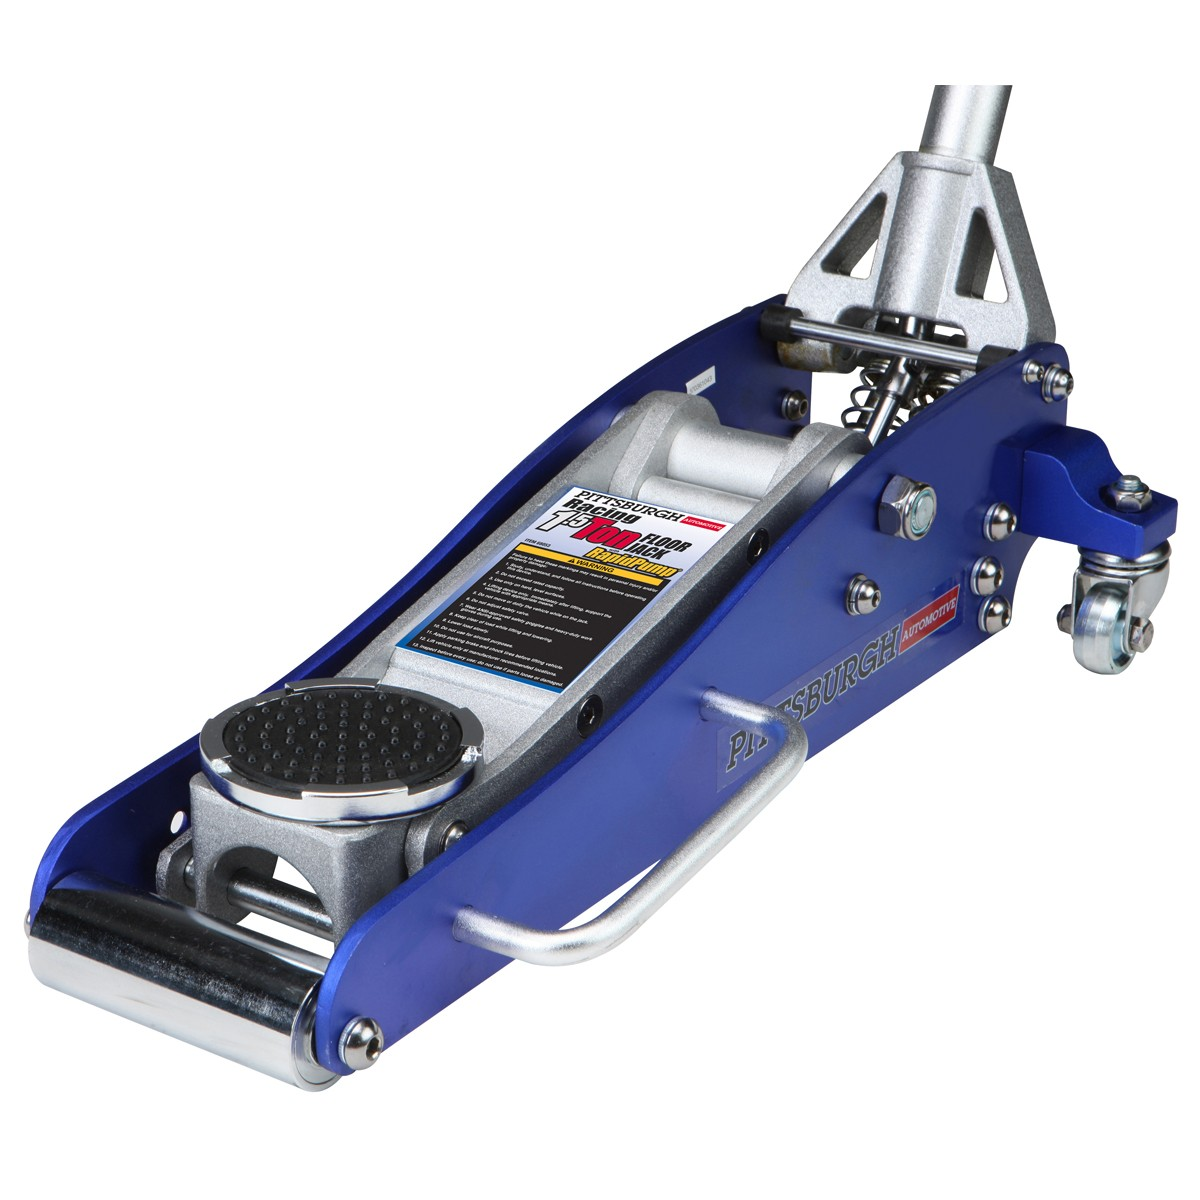 1.5 Ton Aluminum Racing Service Jack with RapidPump®